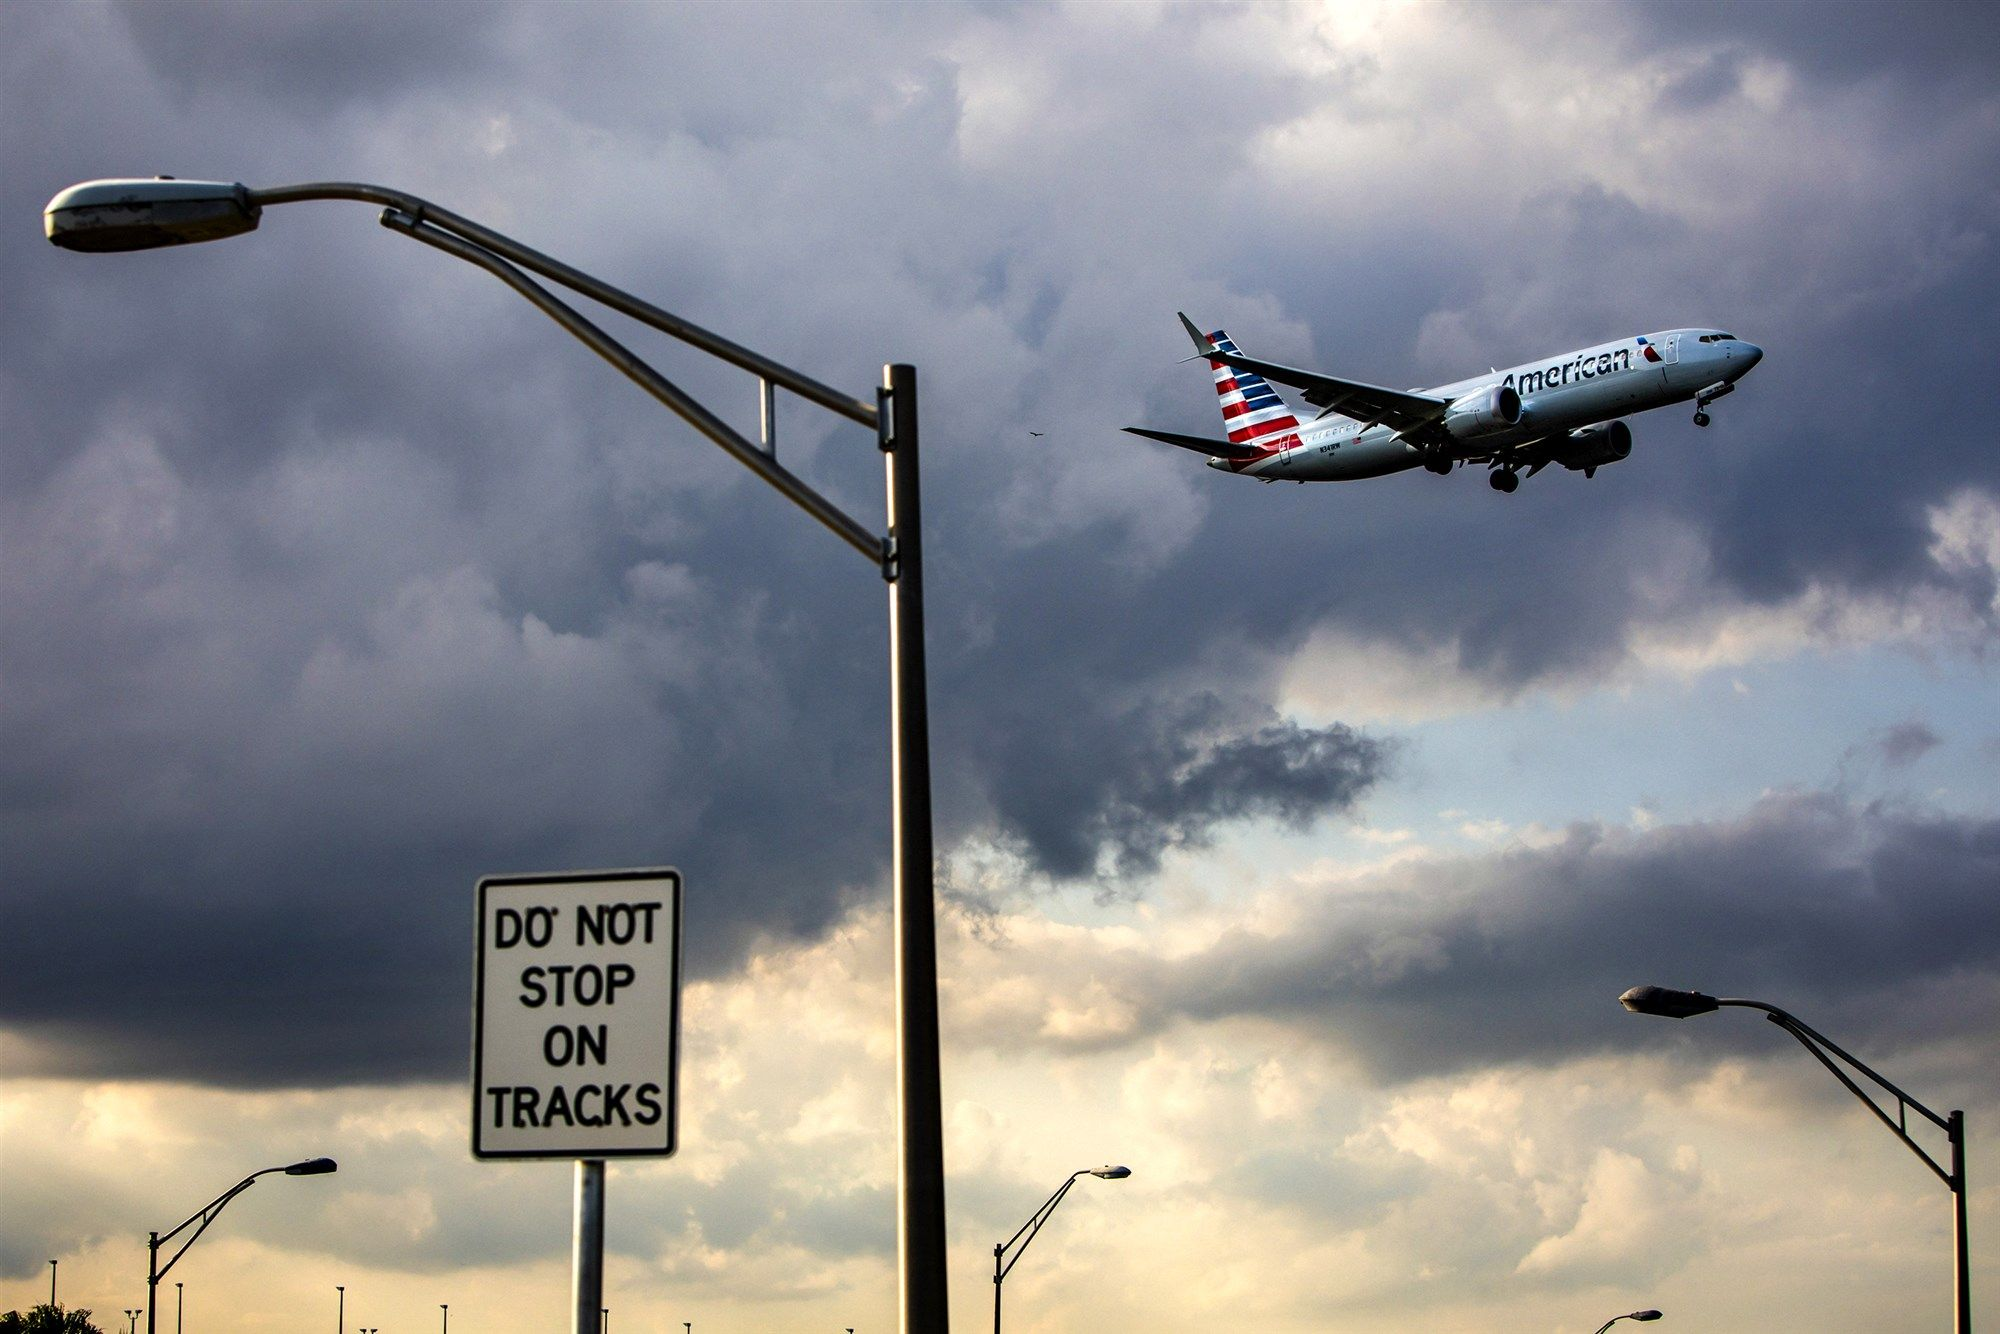 Boeing 737 Max jets grounded under emergency order